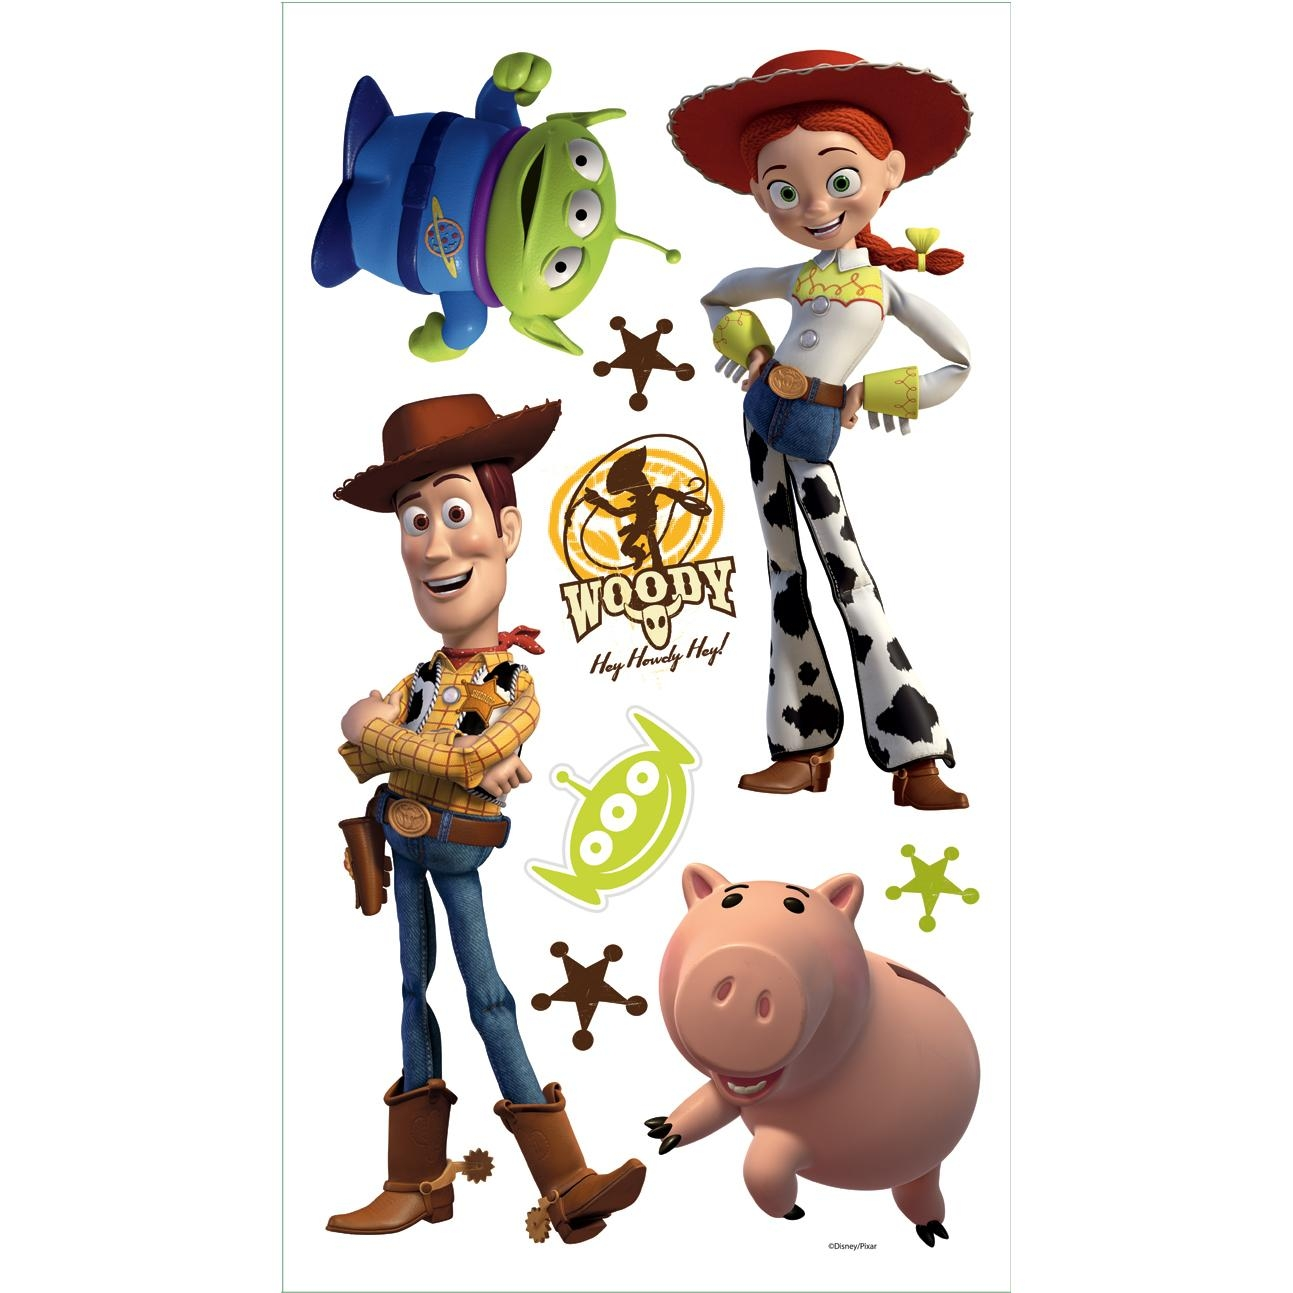 Toy Story 3 Removable Decals | Potty Training Concepts In Toy Story Wall Stickers (View 8 of 20)